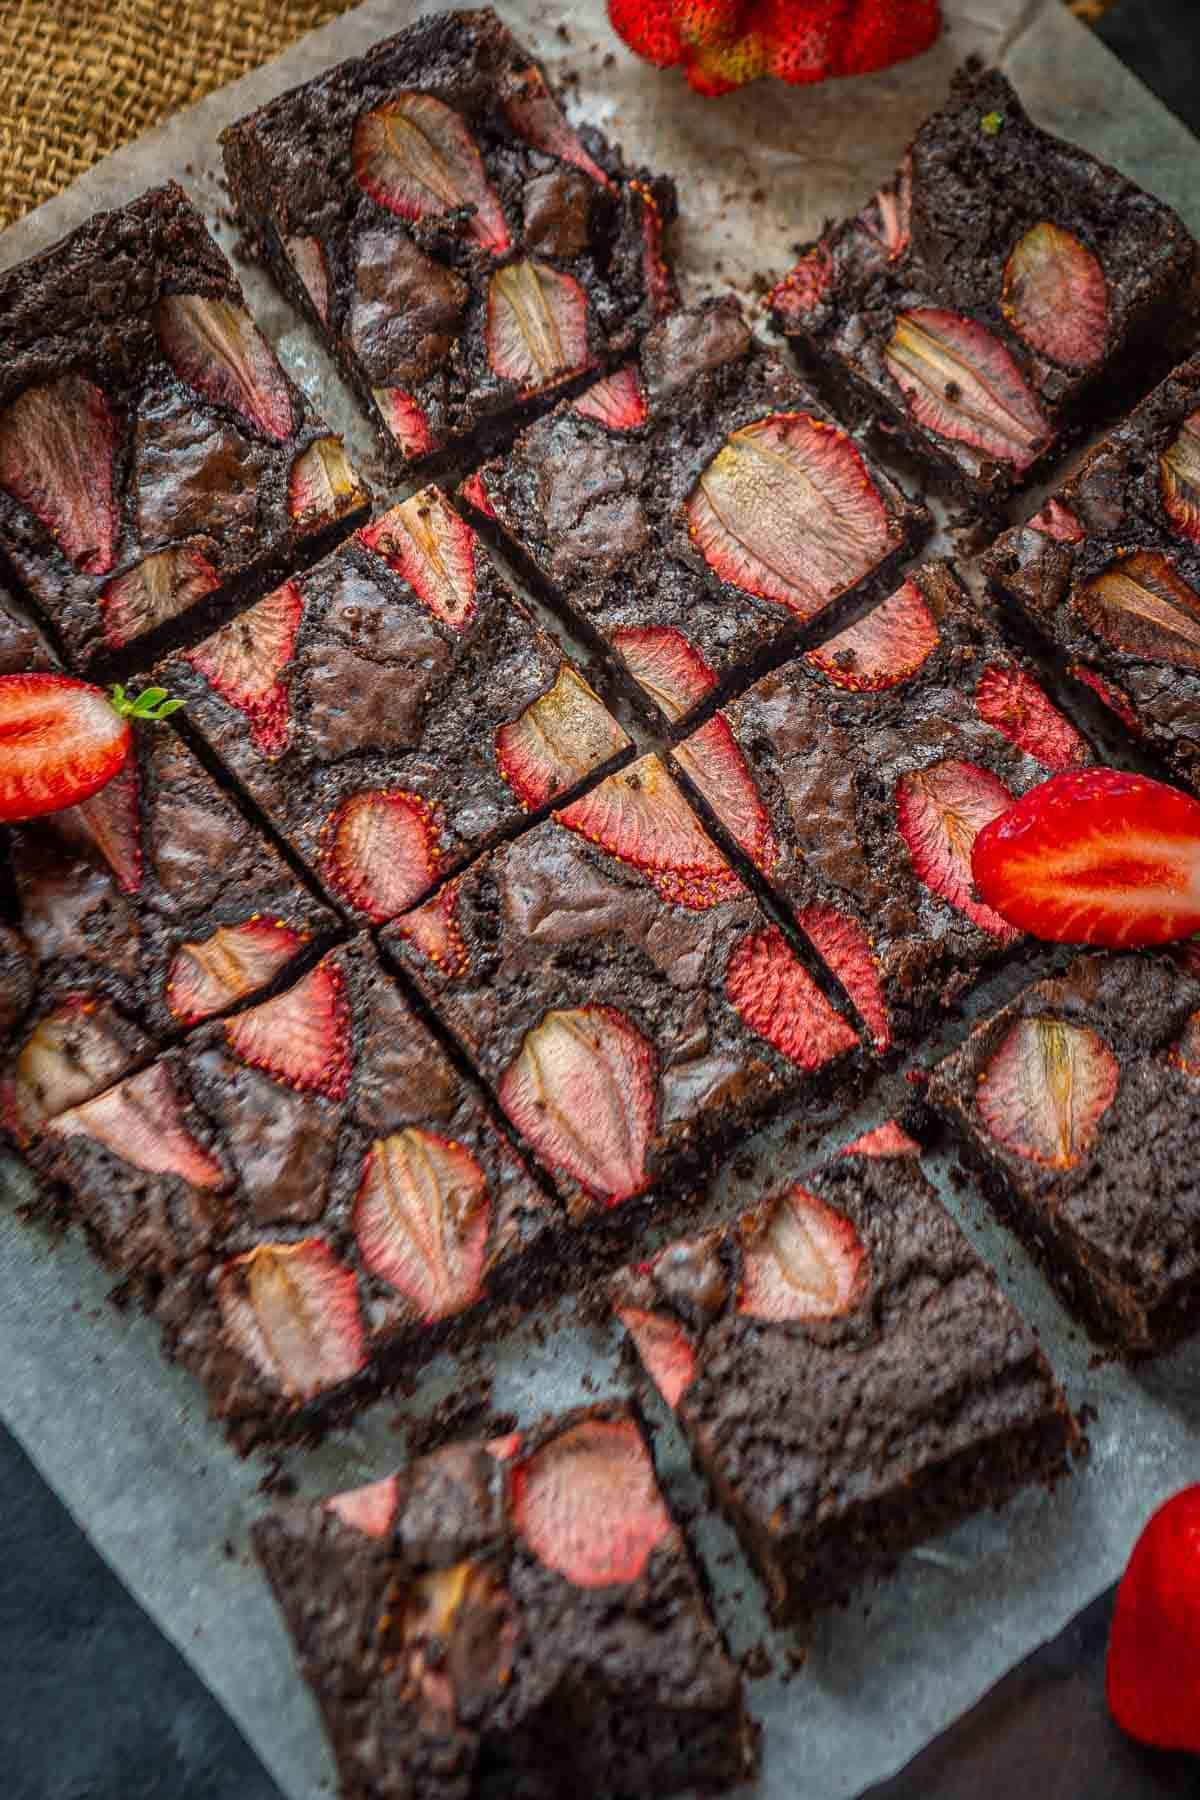 Strawberry Brownies served on a plate.